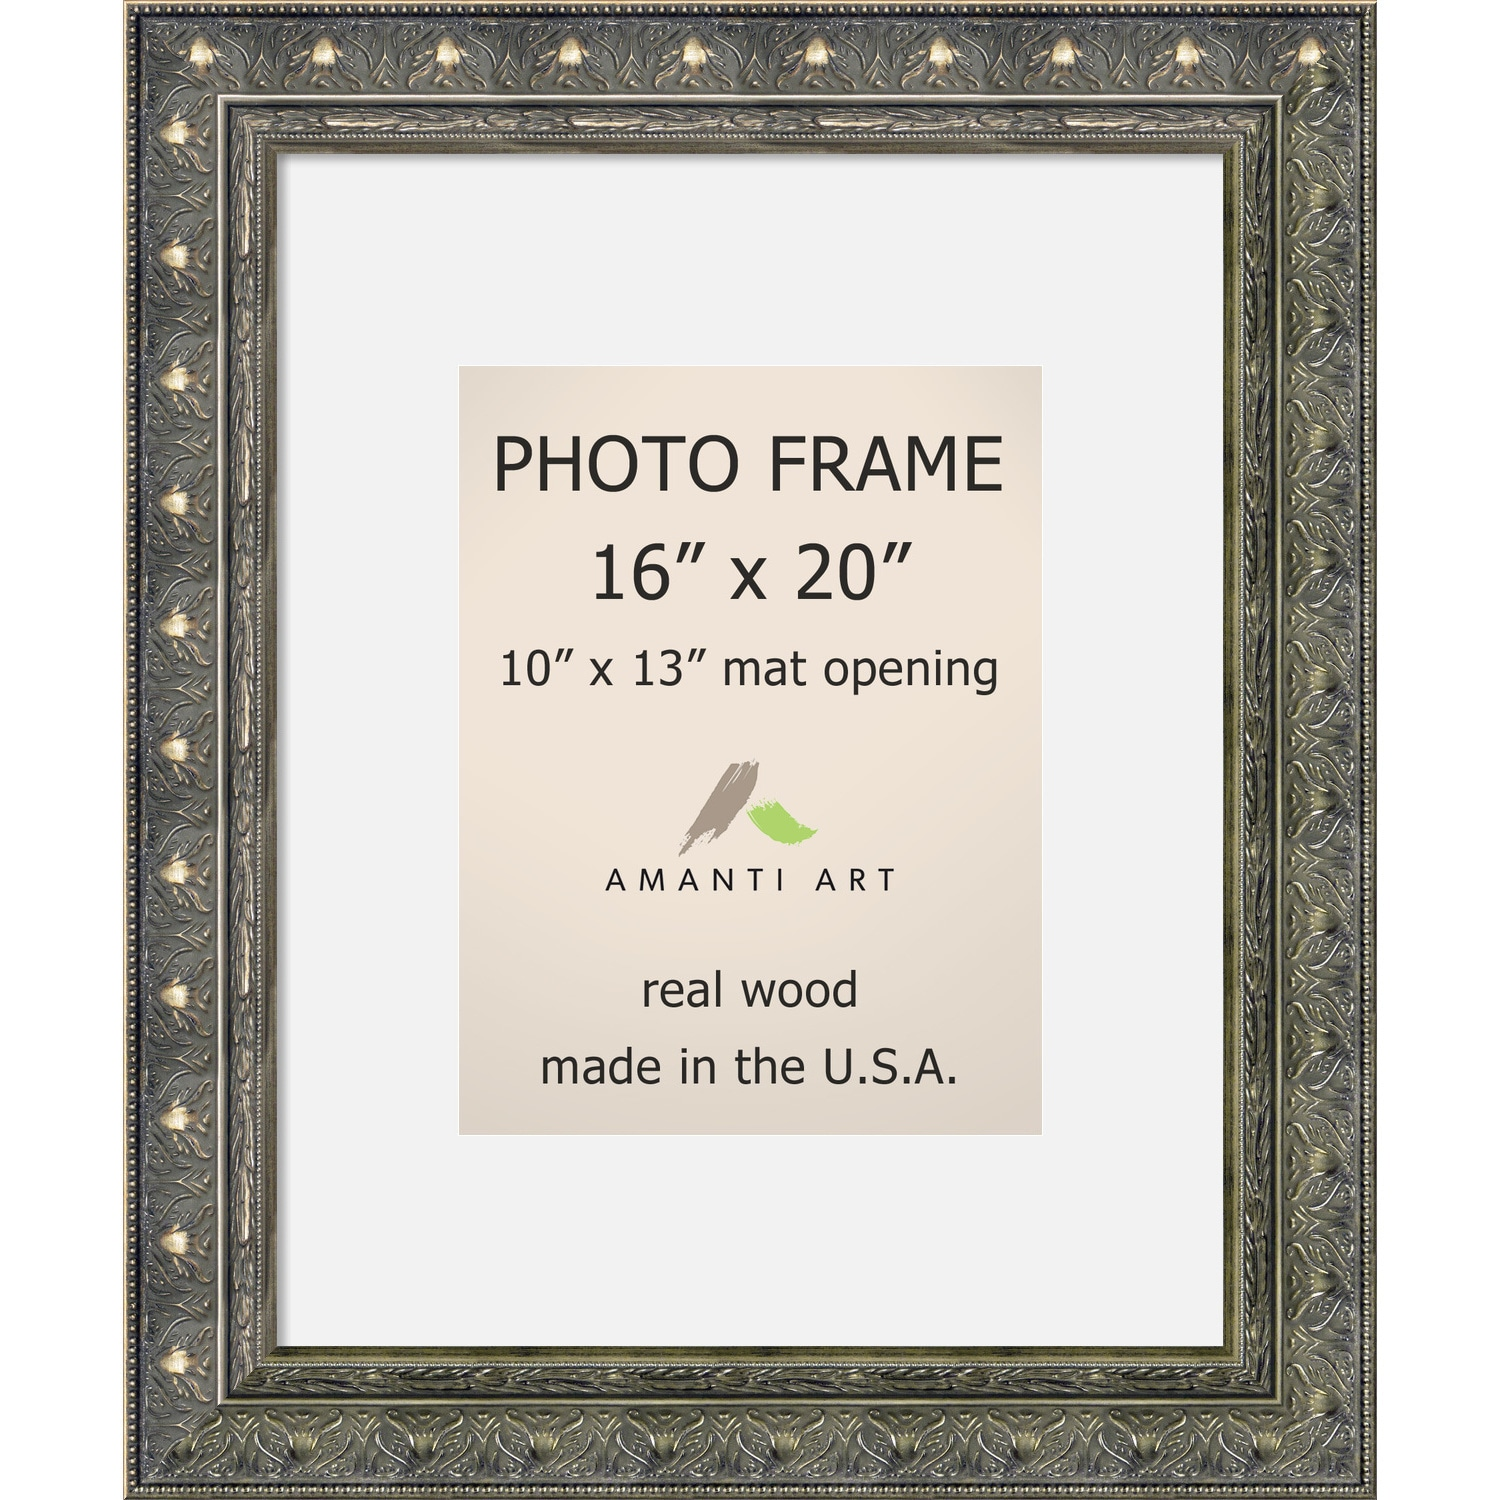 Barcelona Pewter Photo Frame 16x20 Matted To 10x13 20 X